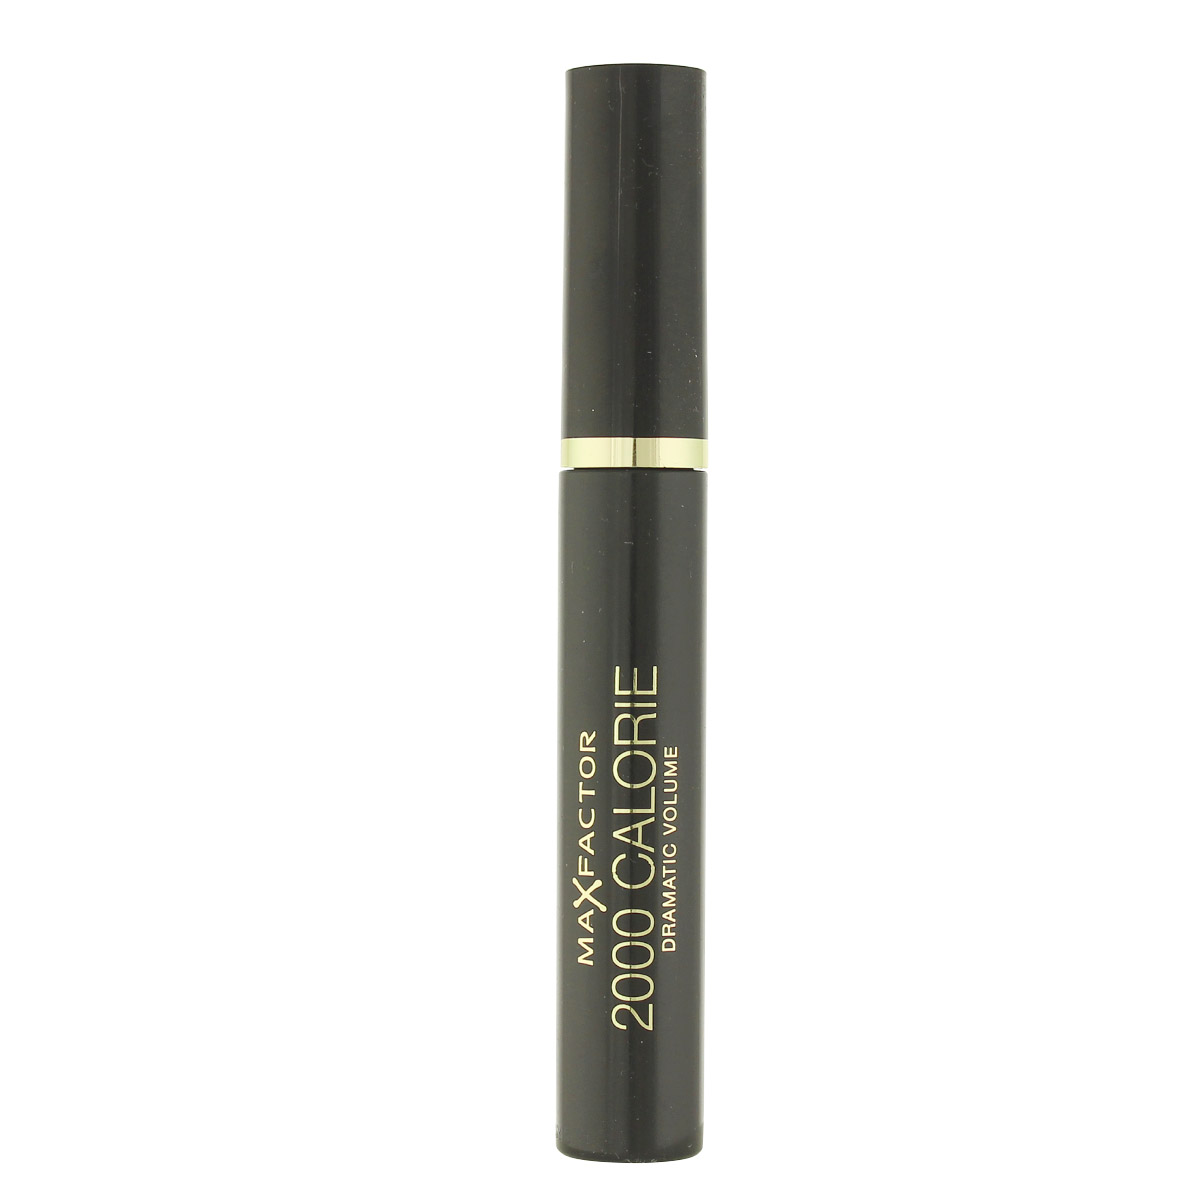 Max Factor 2000 Calorie Dramatic Volume Mascara (Black Brown) 9 ml